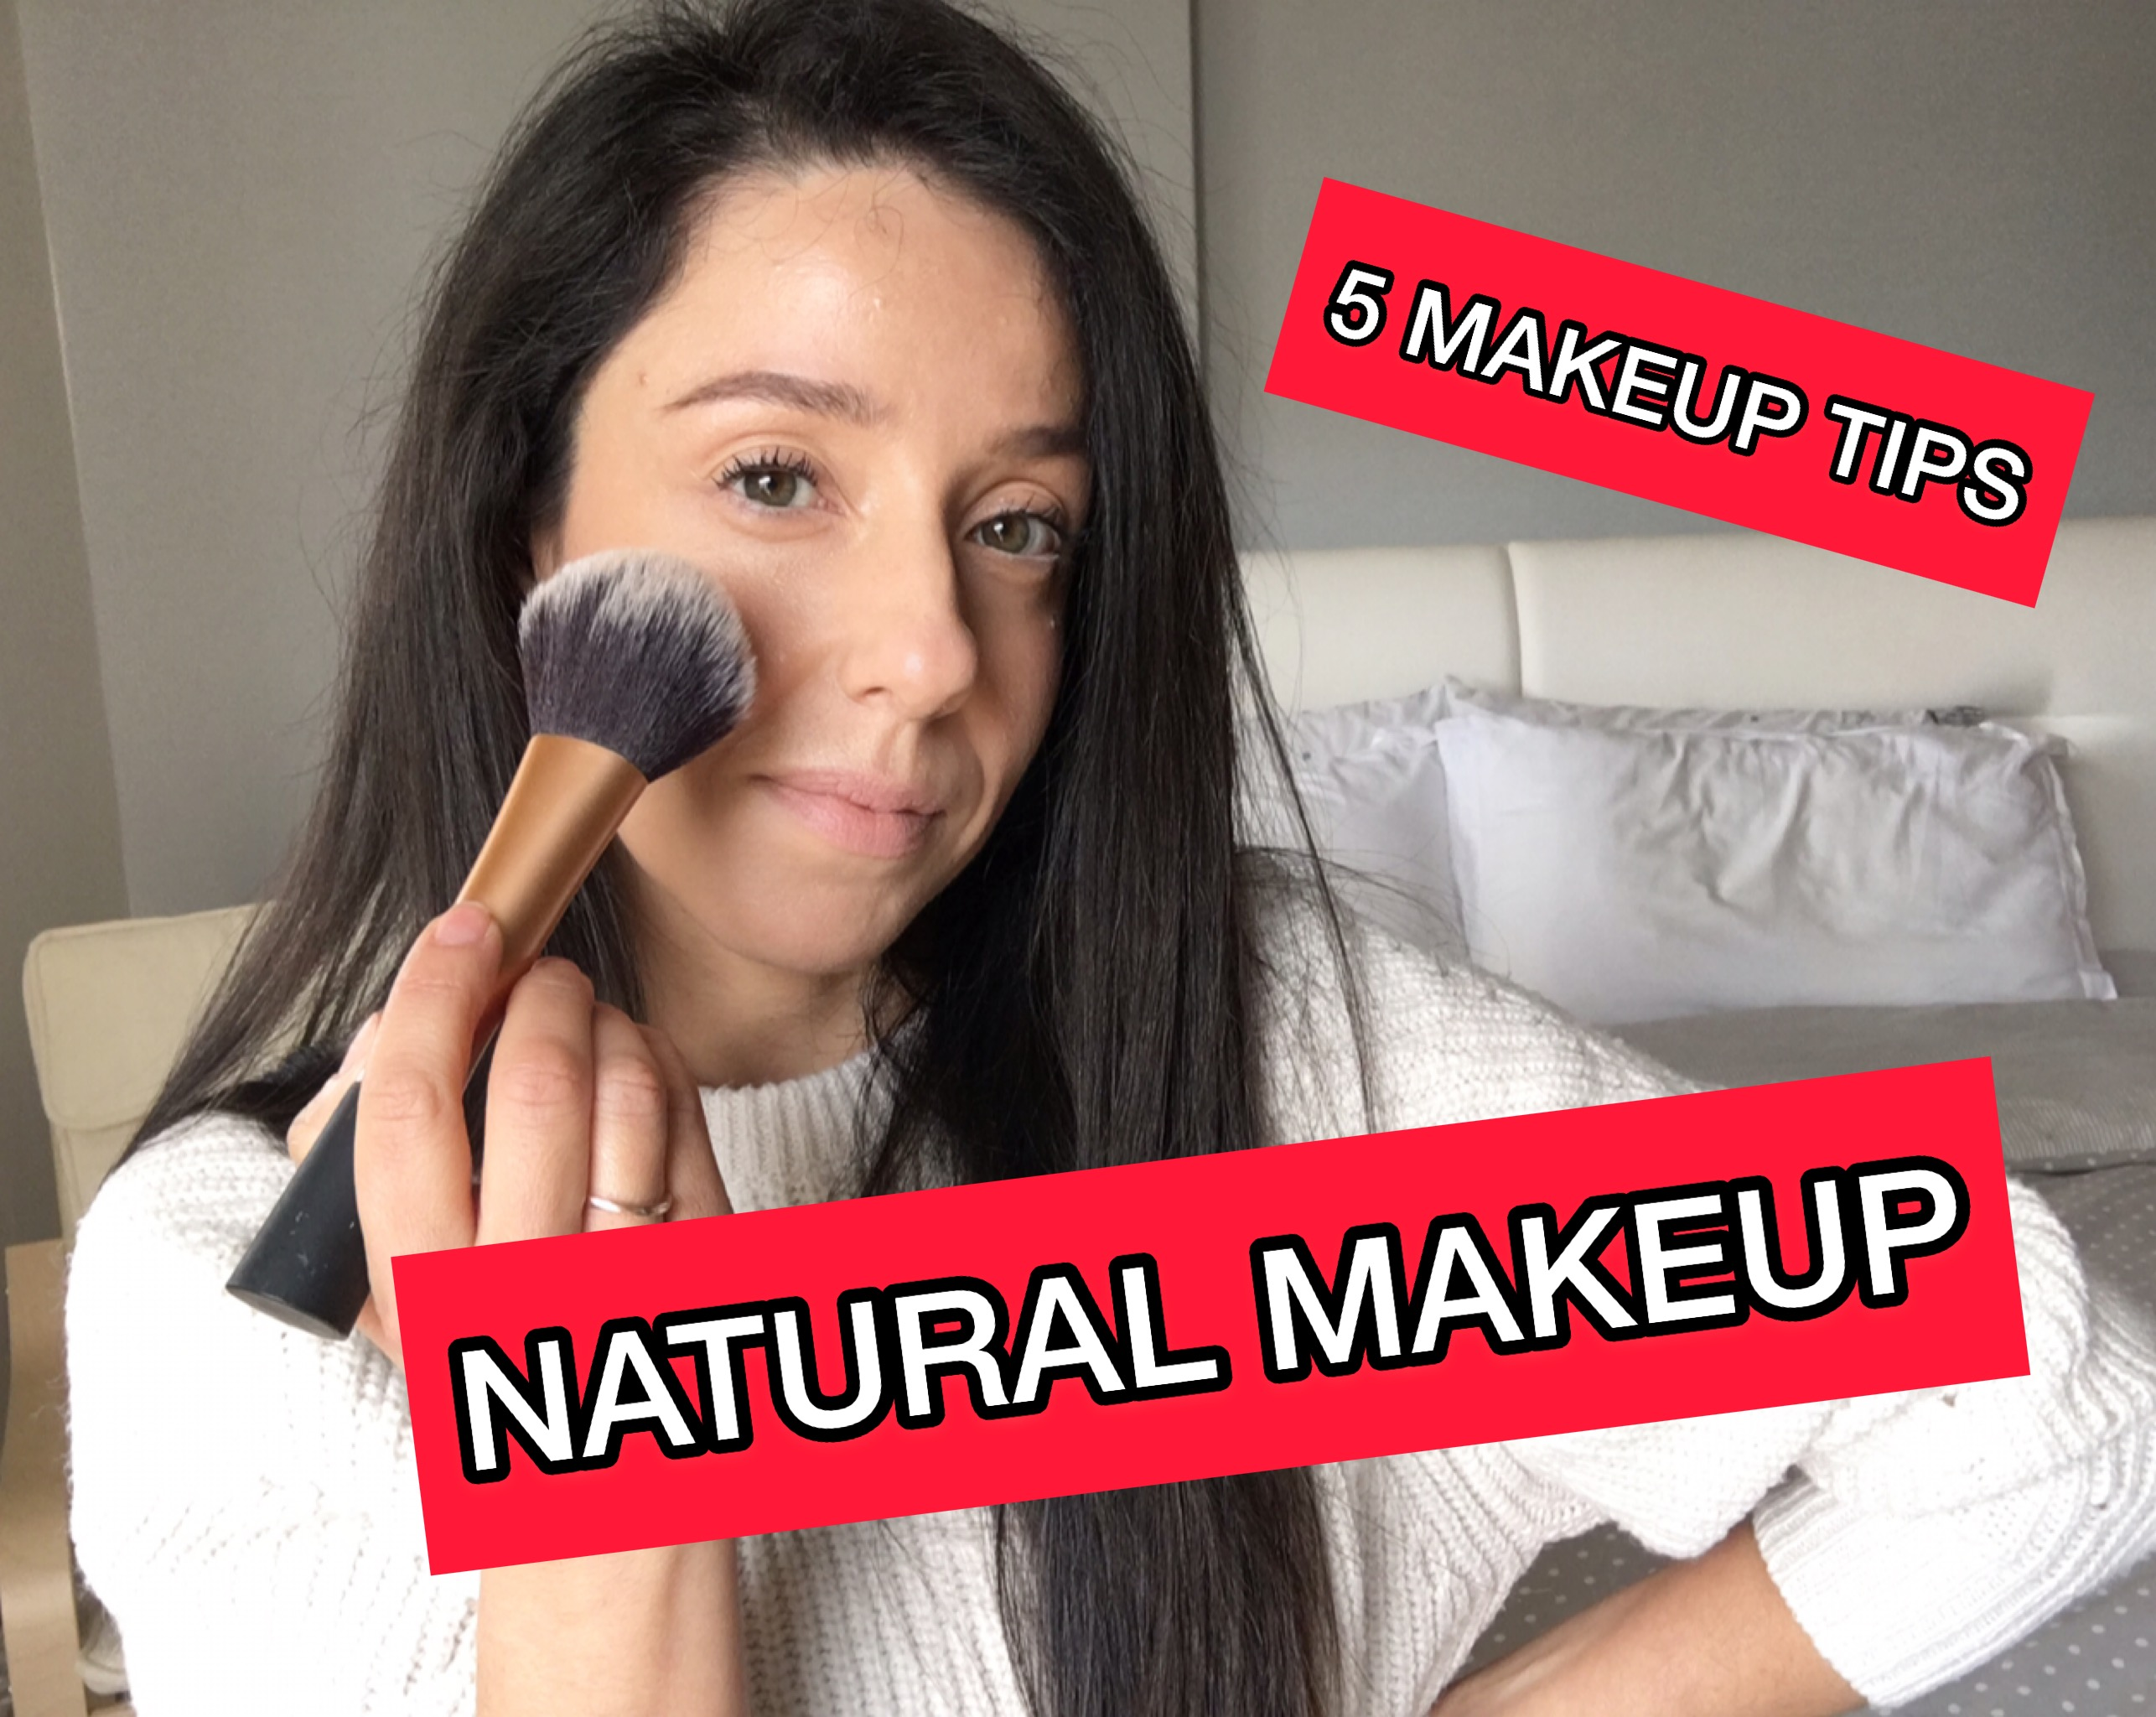 9 MAKEUP TIPS FOR A NATURAL MAKEUP LOOK – Daily Beauty Tips